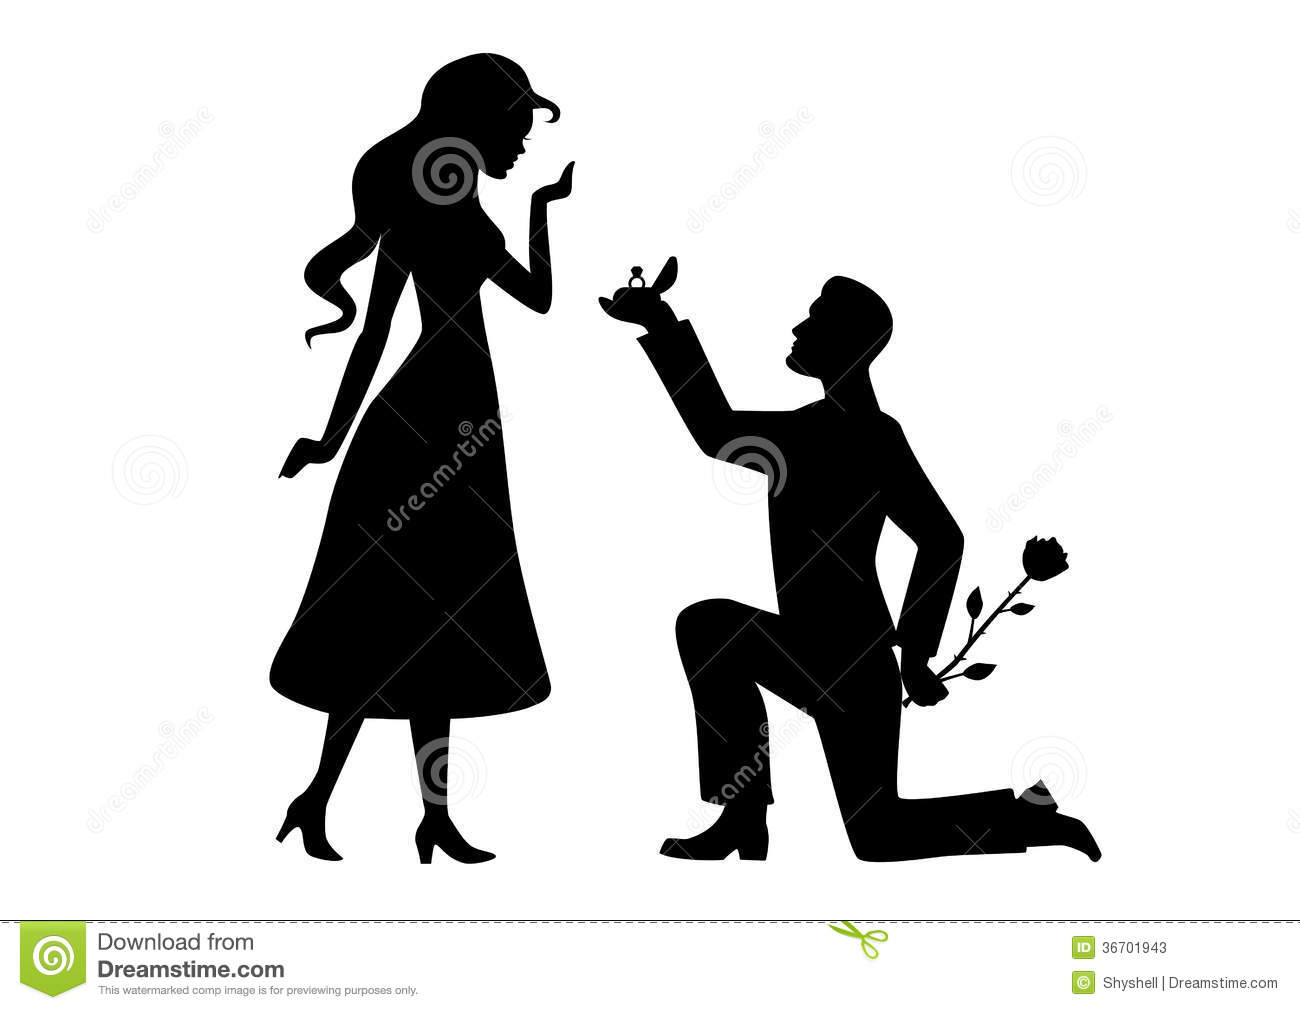 Marriage proposal clipart.